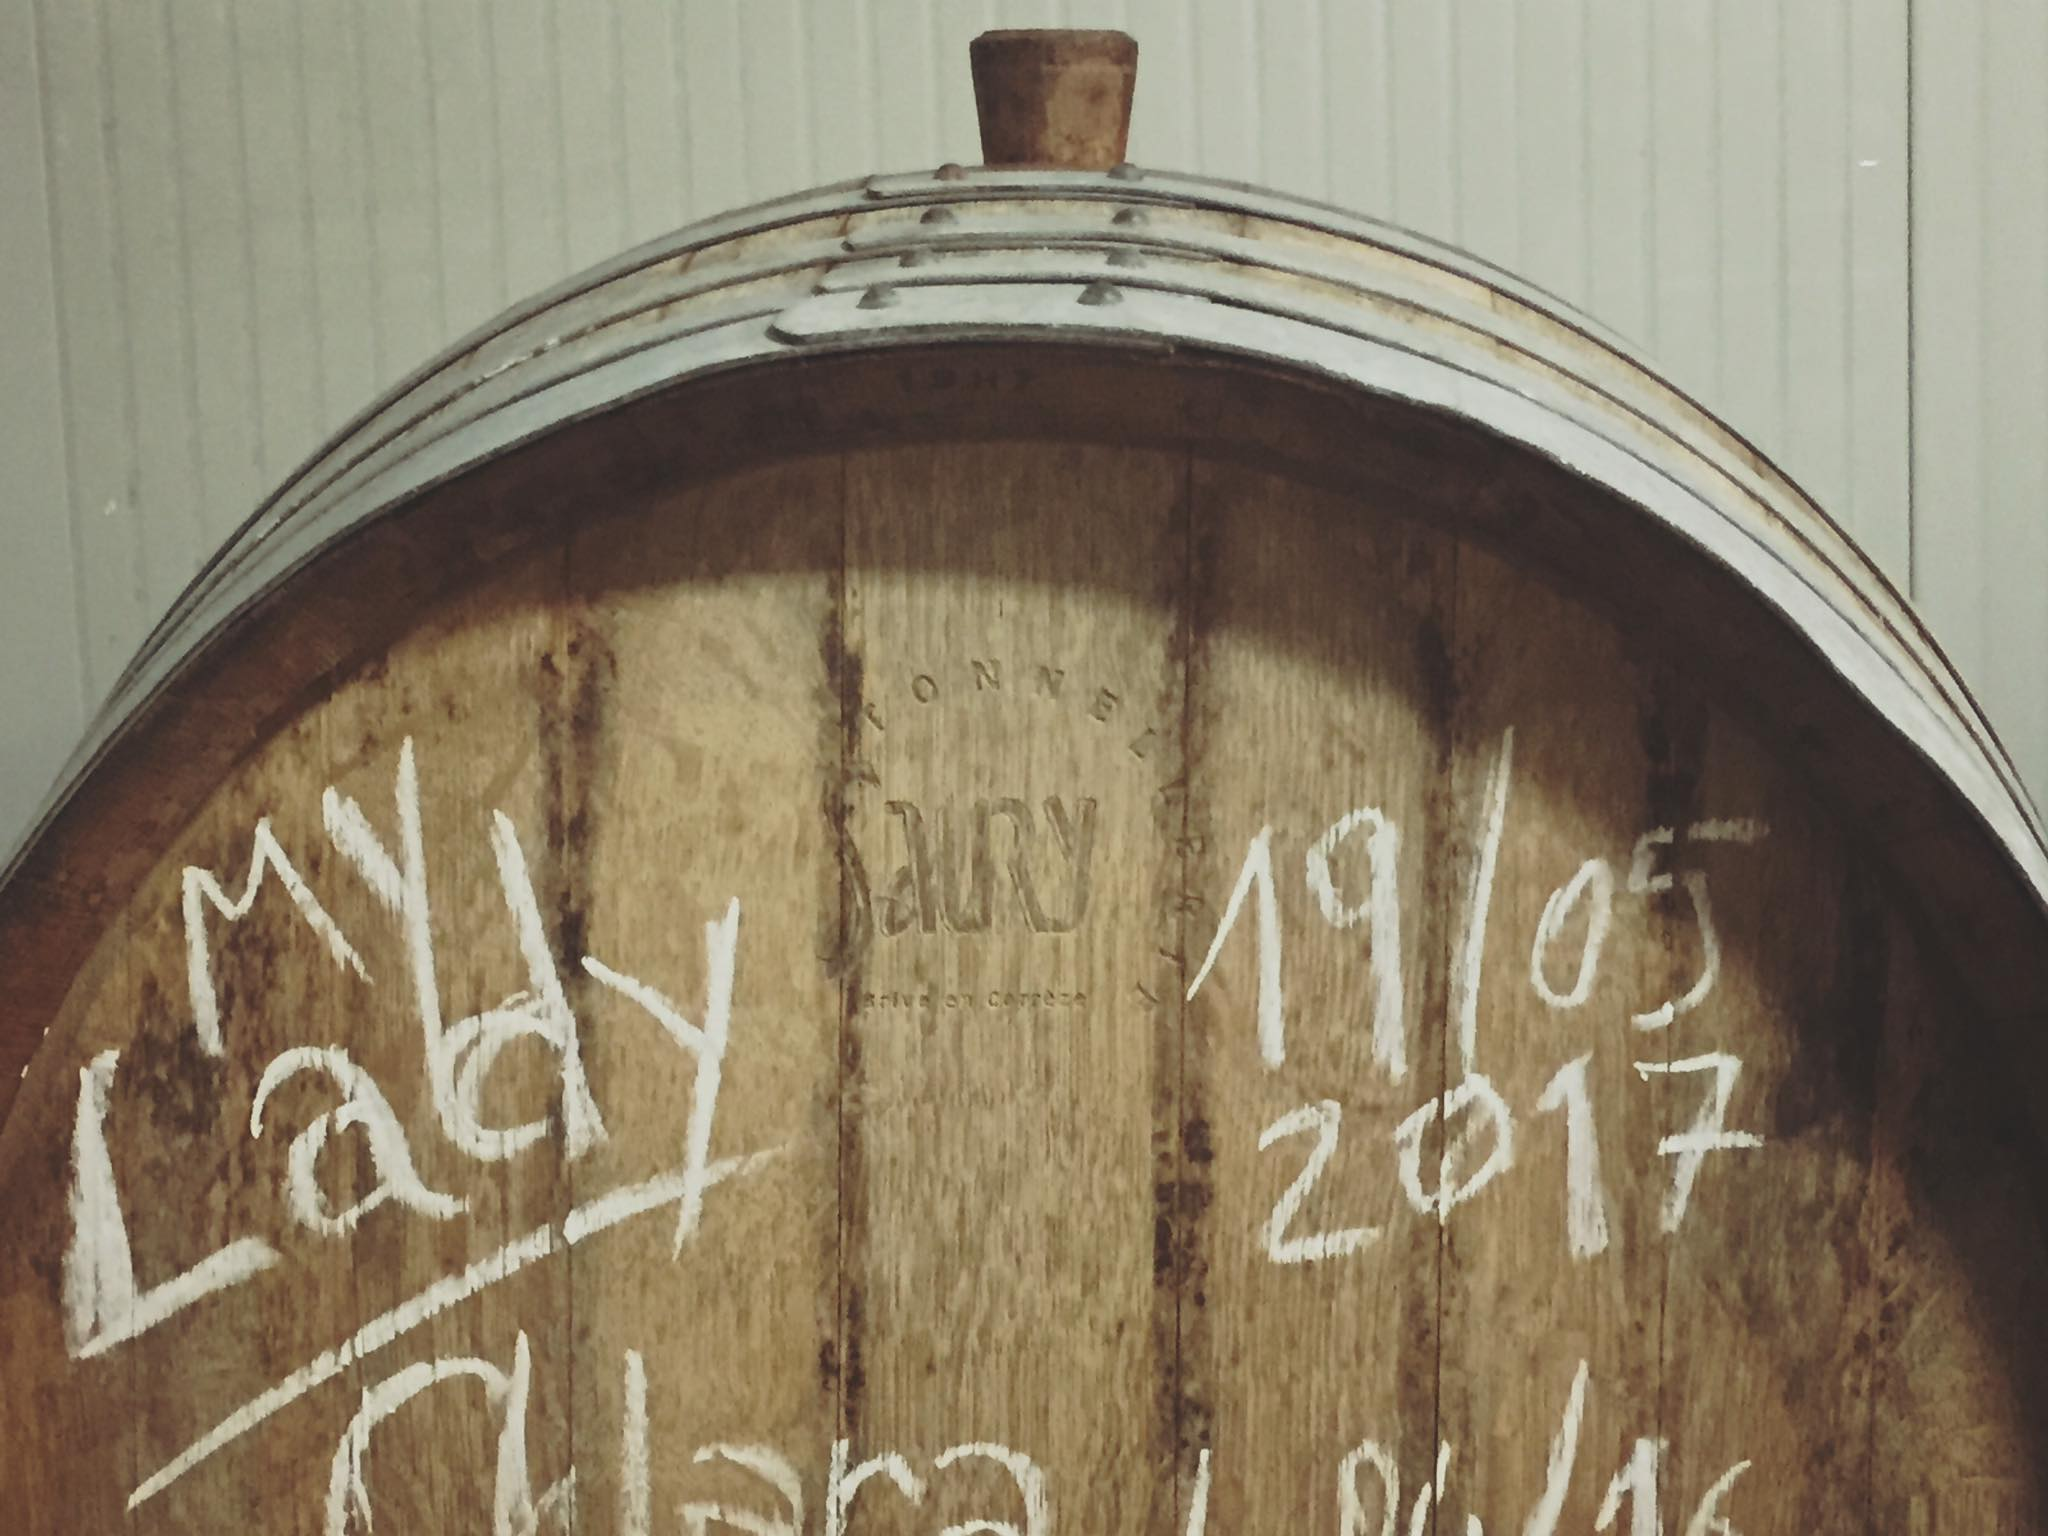 https://www.labuttiga.it/wp-content/uploads/2020/07/La-Buttiga-Barrel-Aged-My-Lady.jpg